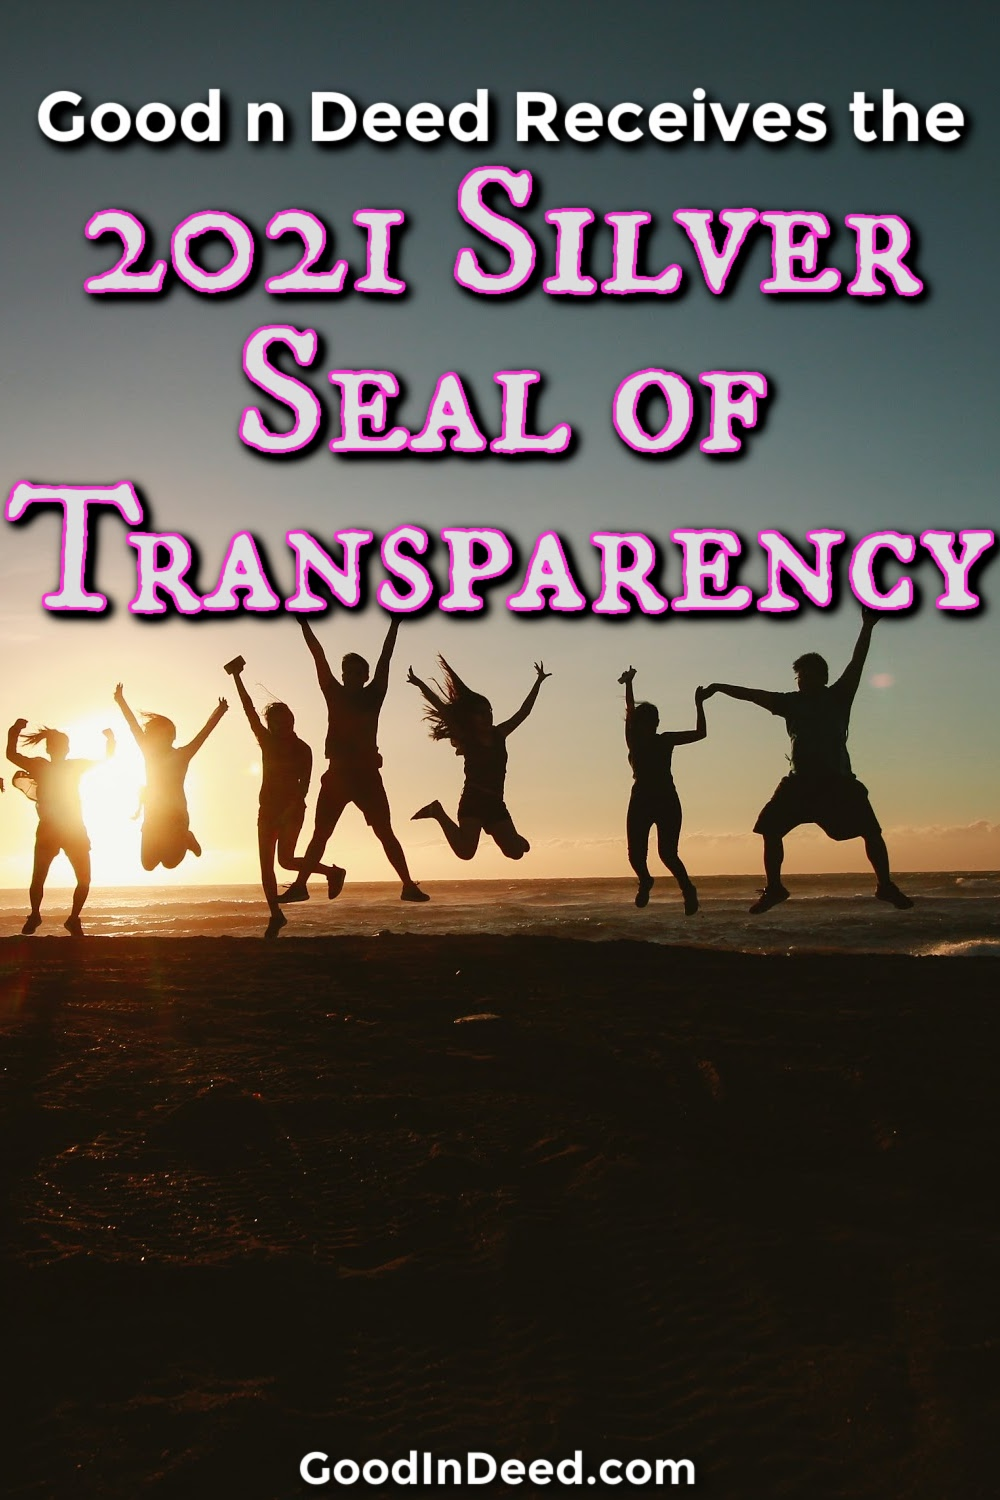 Good In Deed has received the 2021 Silver Seal of Transparency from CandidDotOrg as part of the Guide Star program.